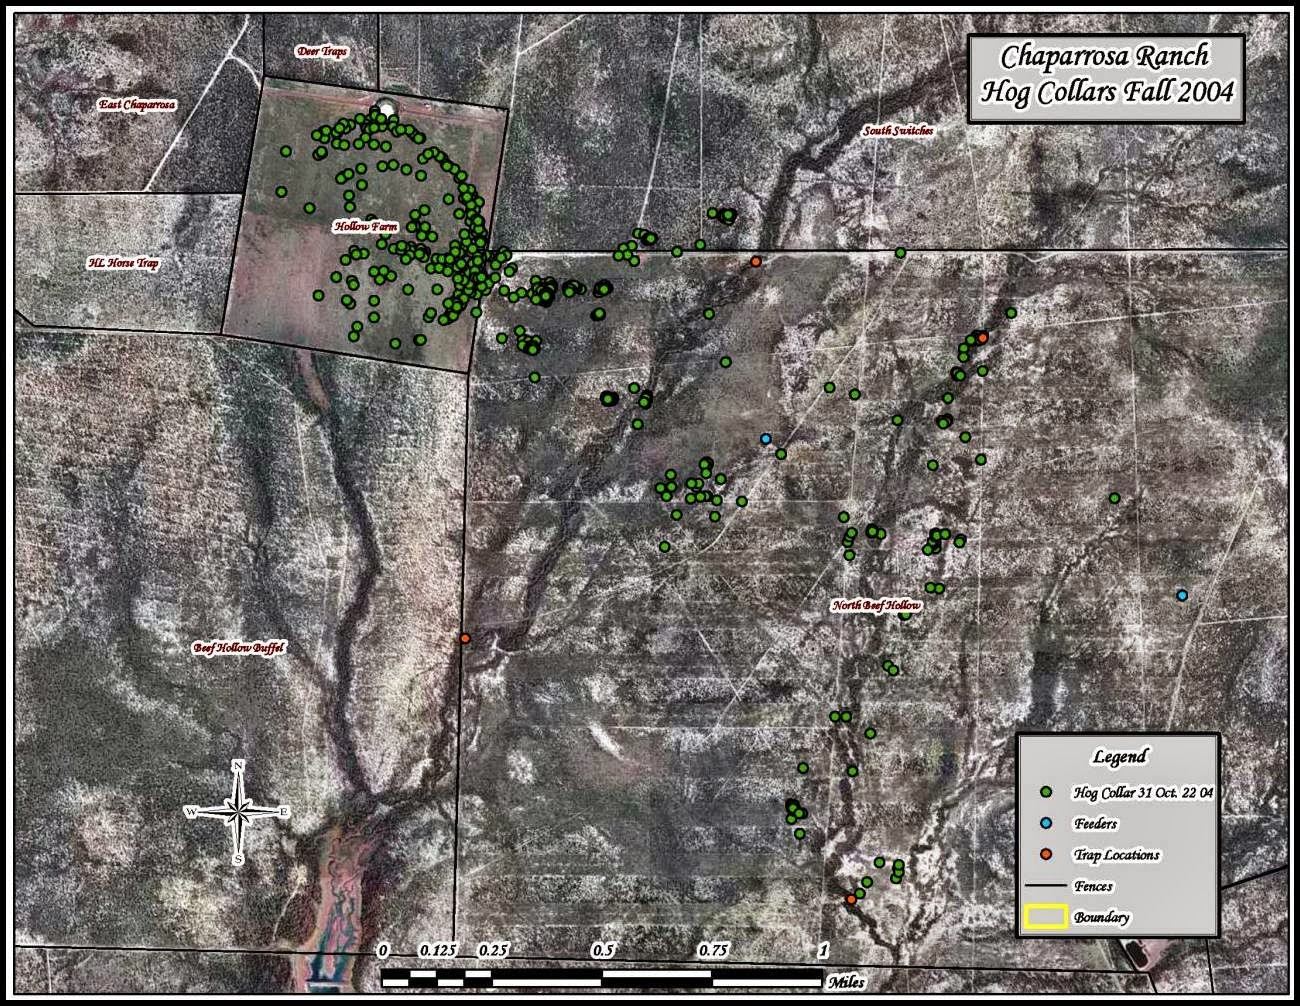 The Picture Below Represents The Locations Of A Specific Feral Hog On An Area Of Land During The Fall Of 2004